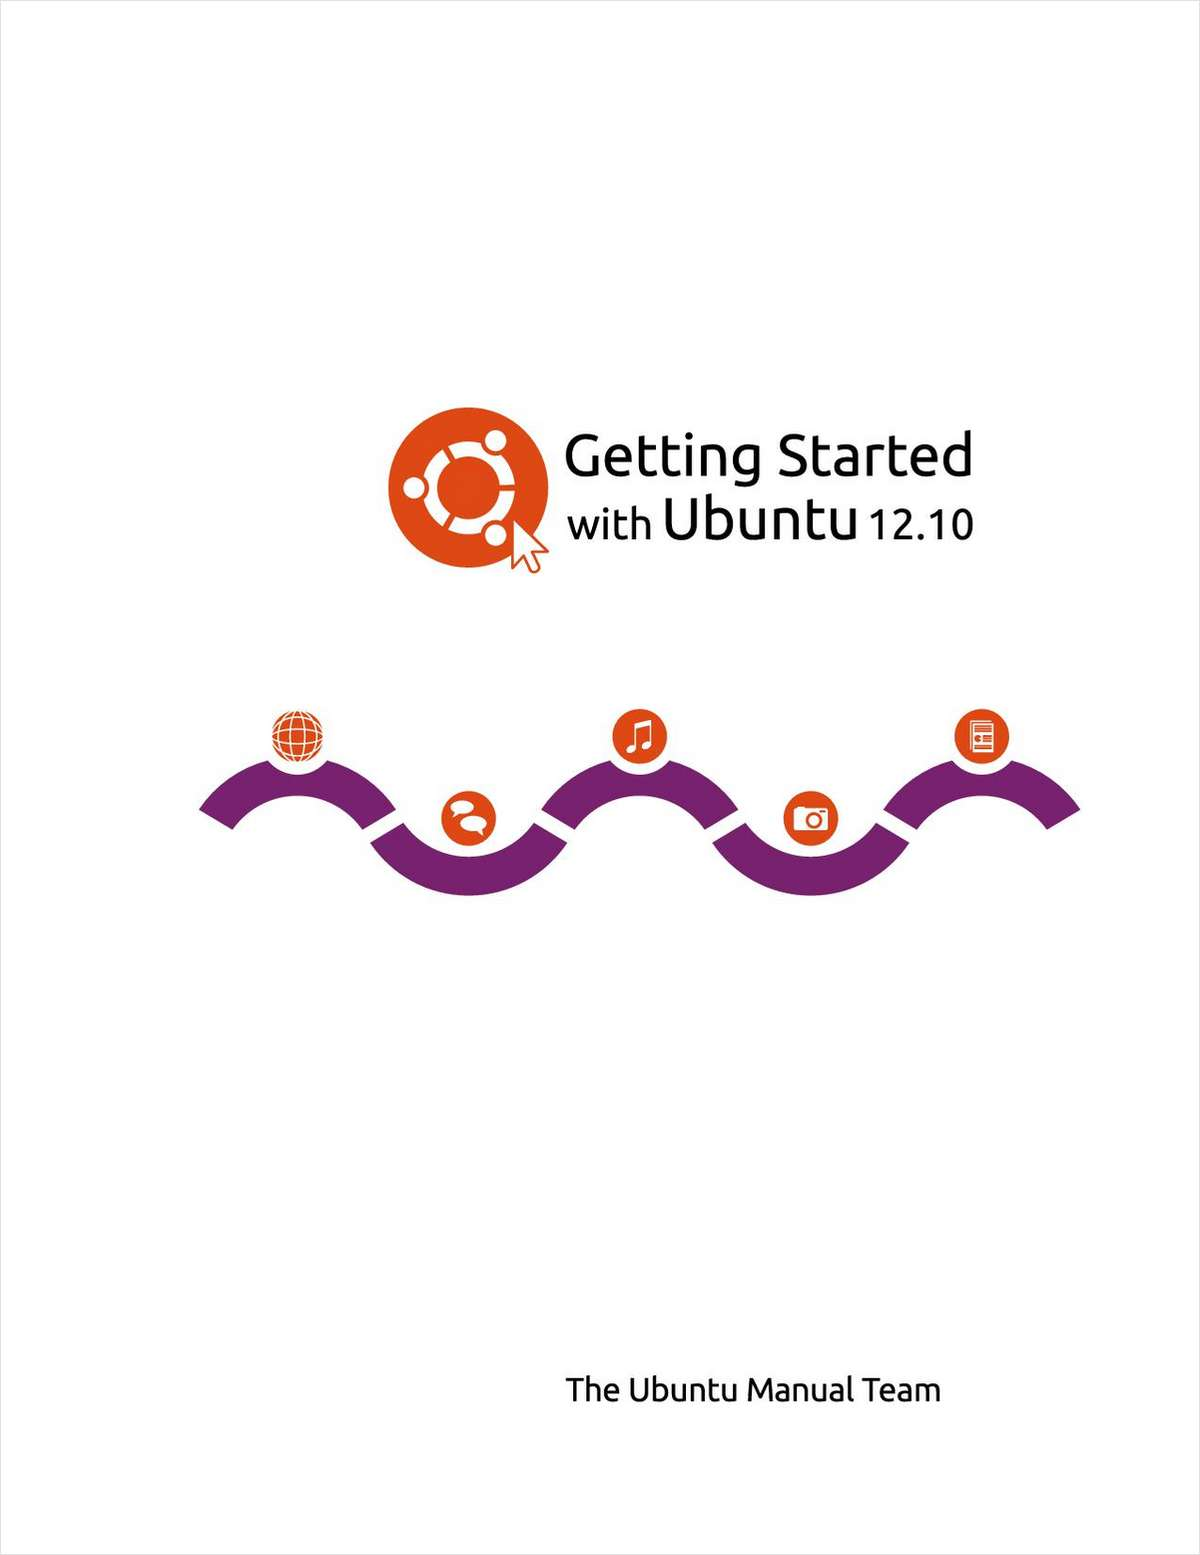 Getting Started with Ubuntu 12.10